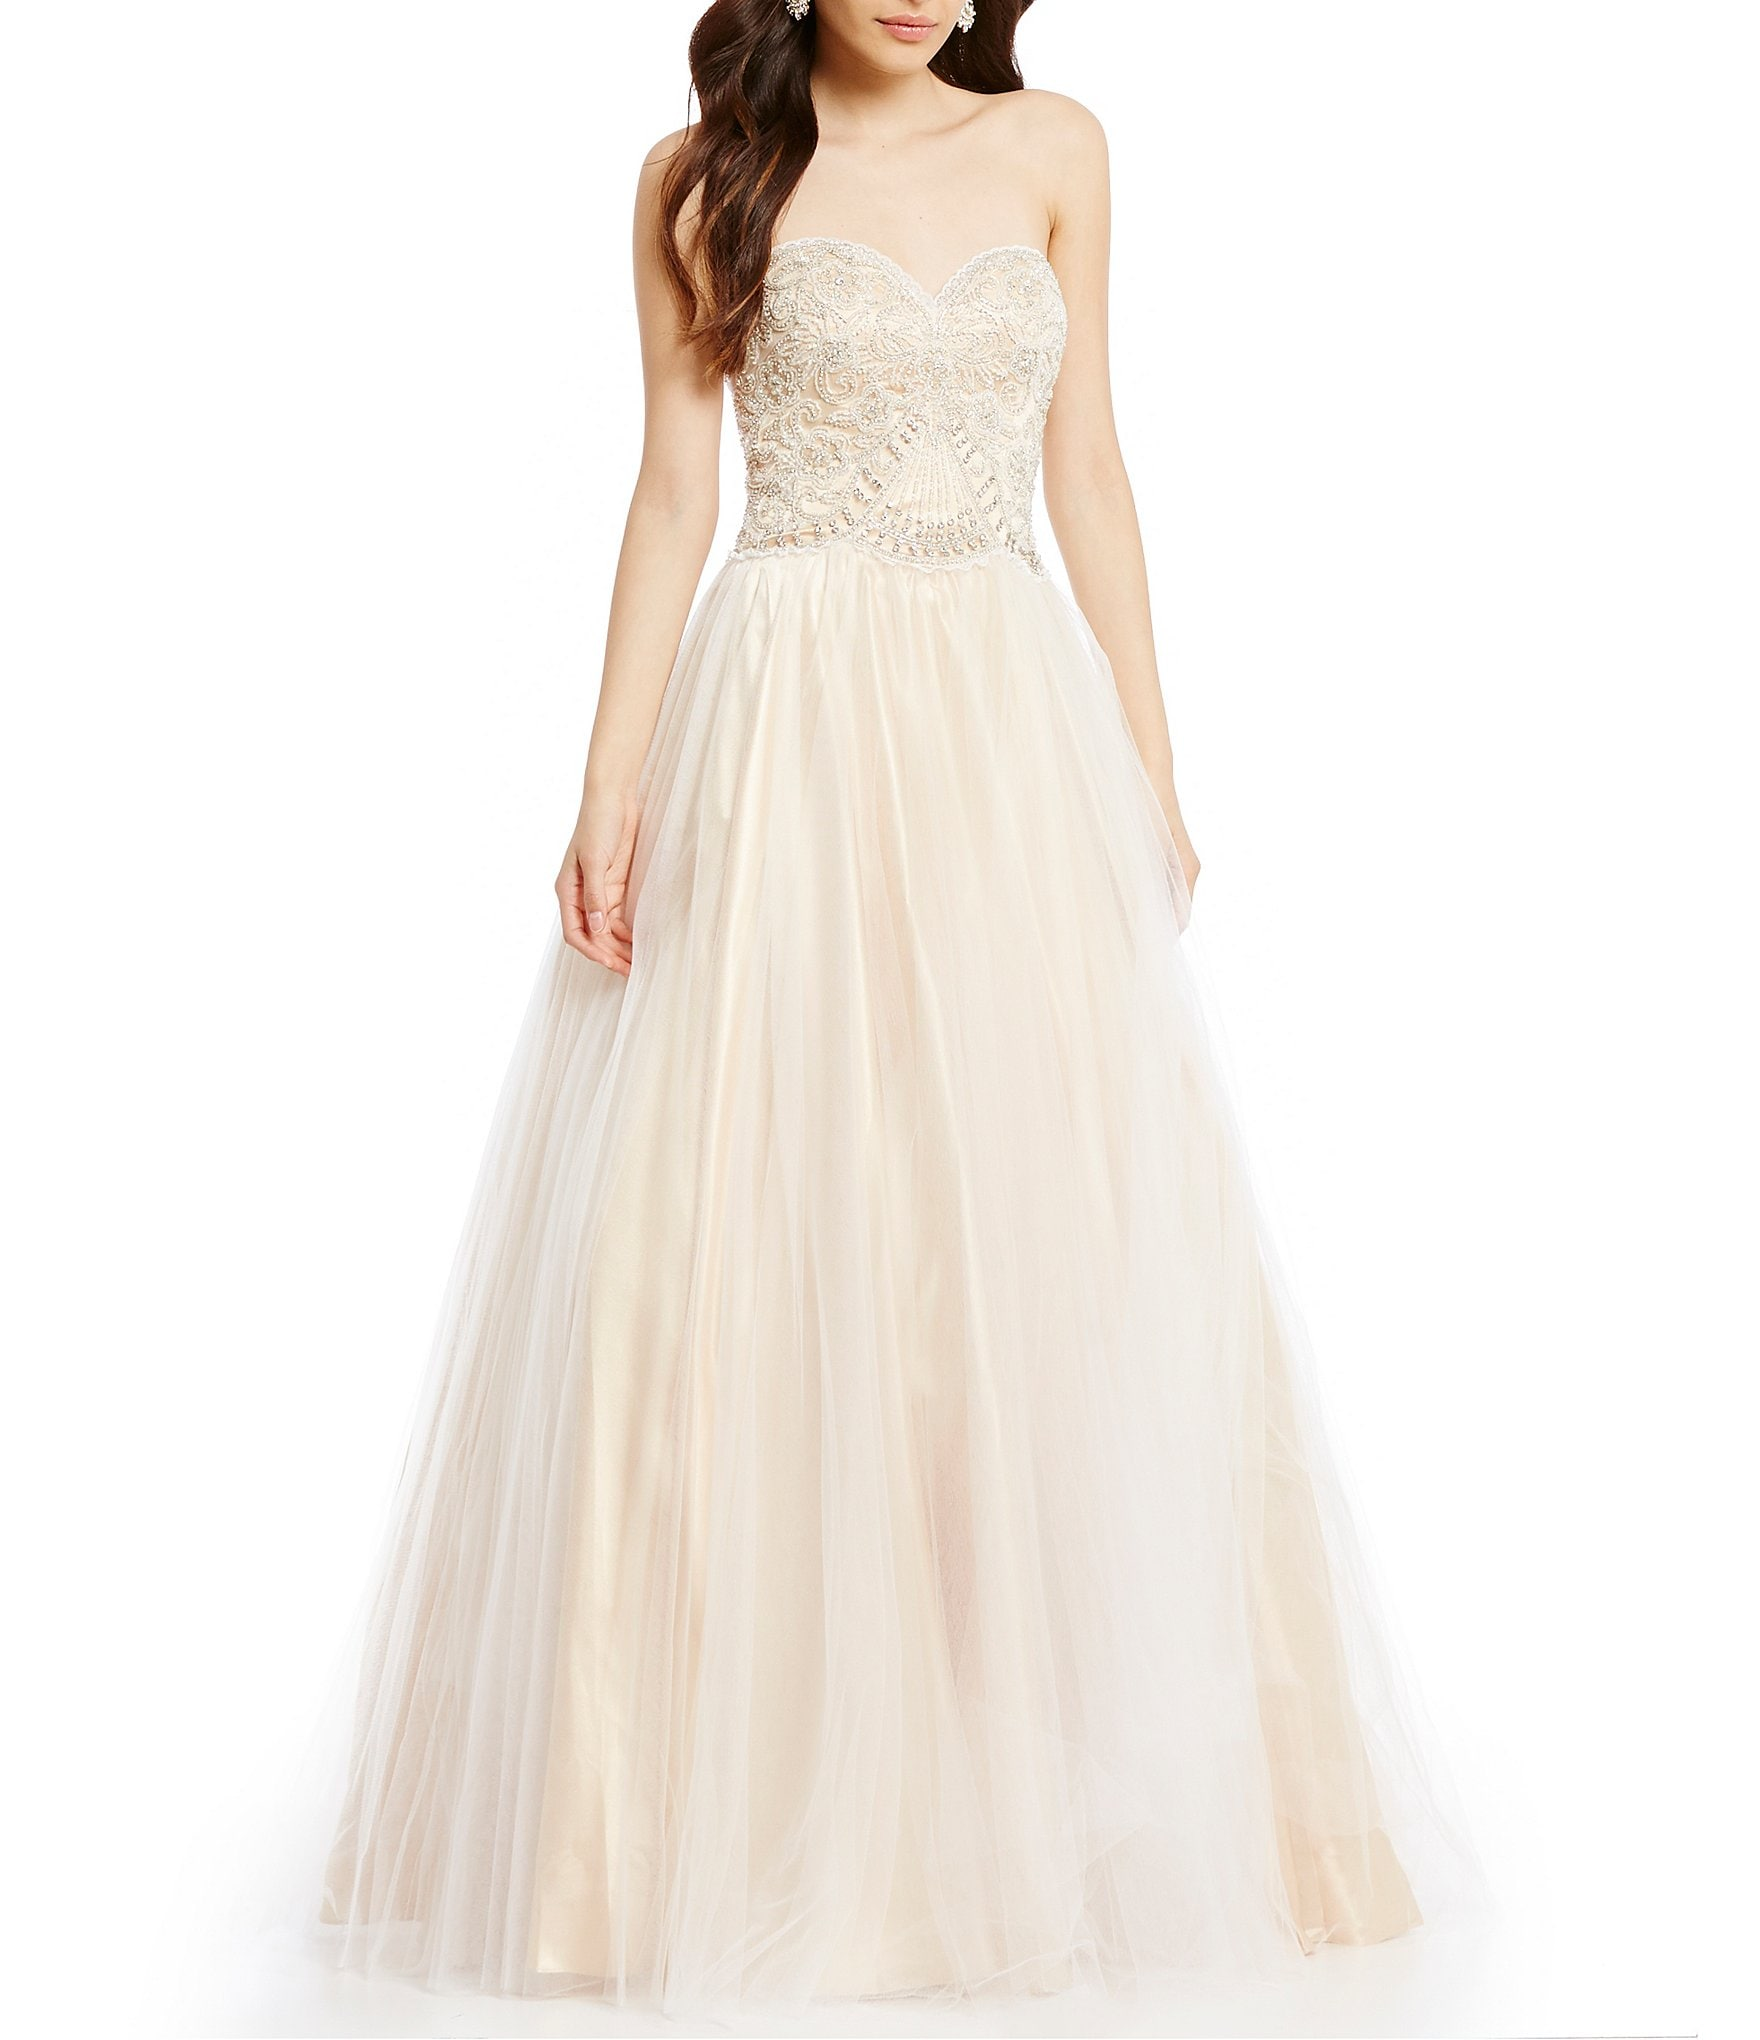 Glamour by Terani Couture Strapless Beaded Sweetheart